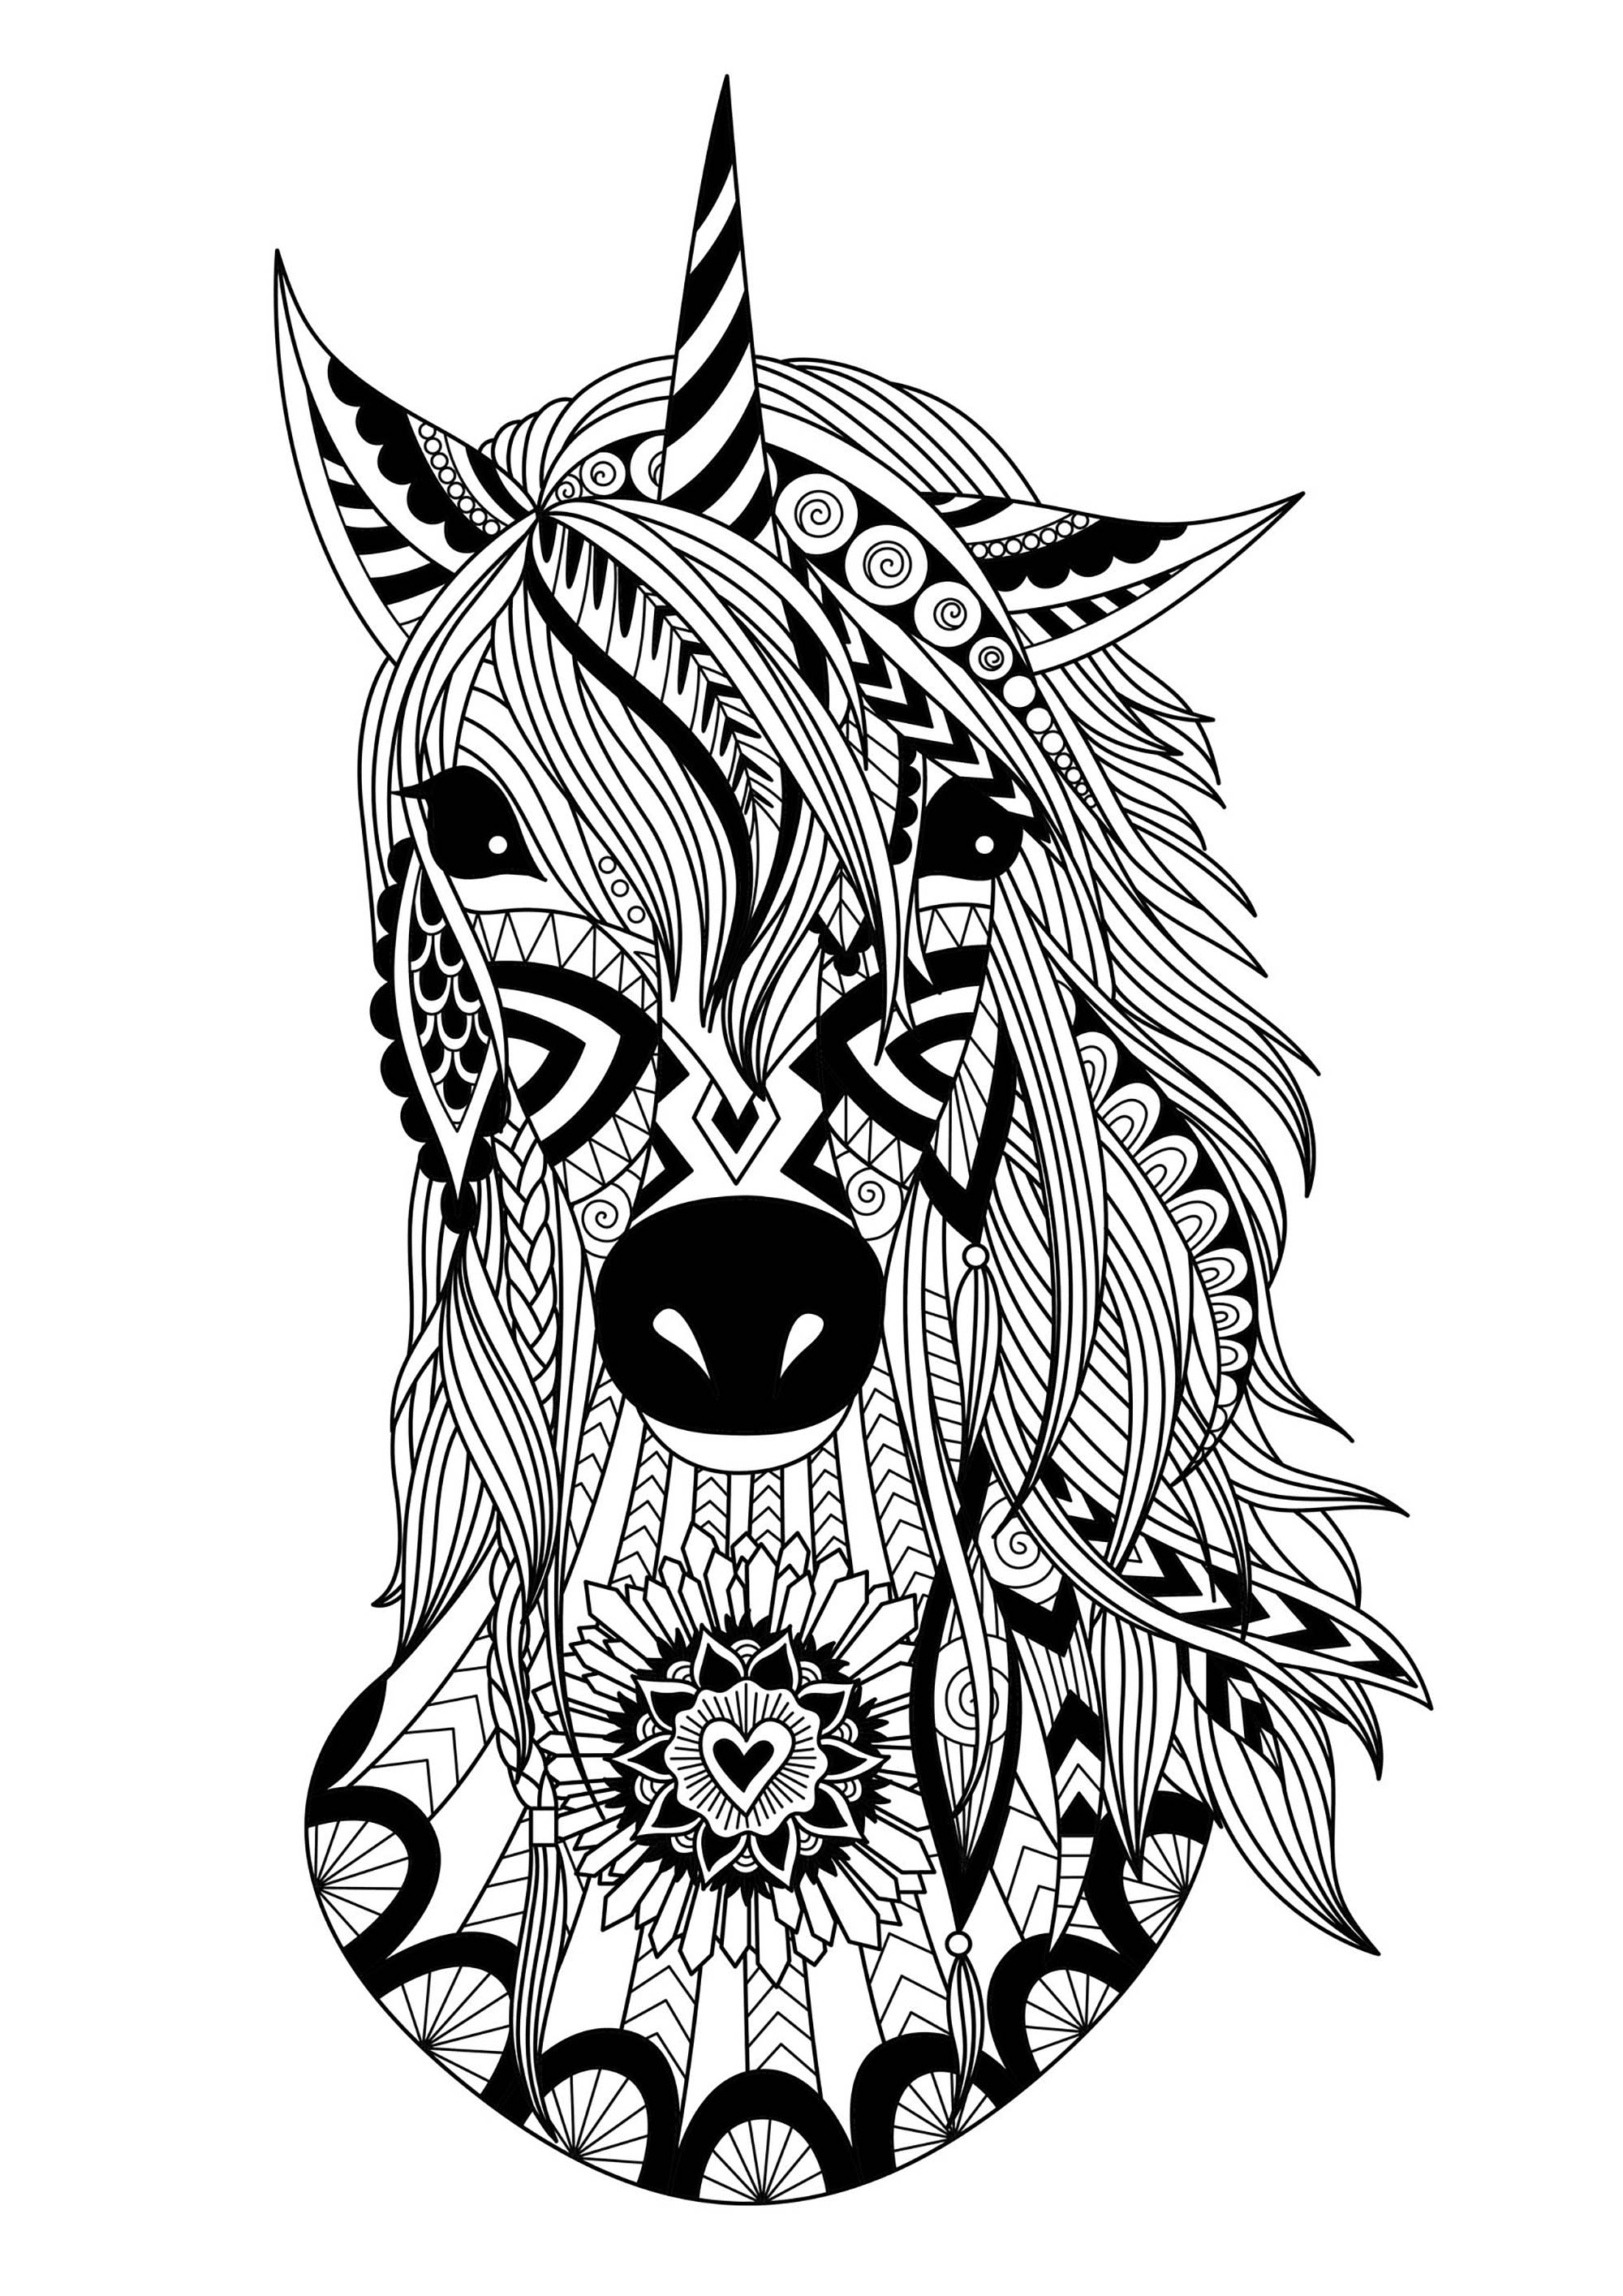 unicorn colouring picture unicorn coloring pages to download and print for free picture unicorn colouring 1 1